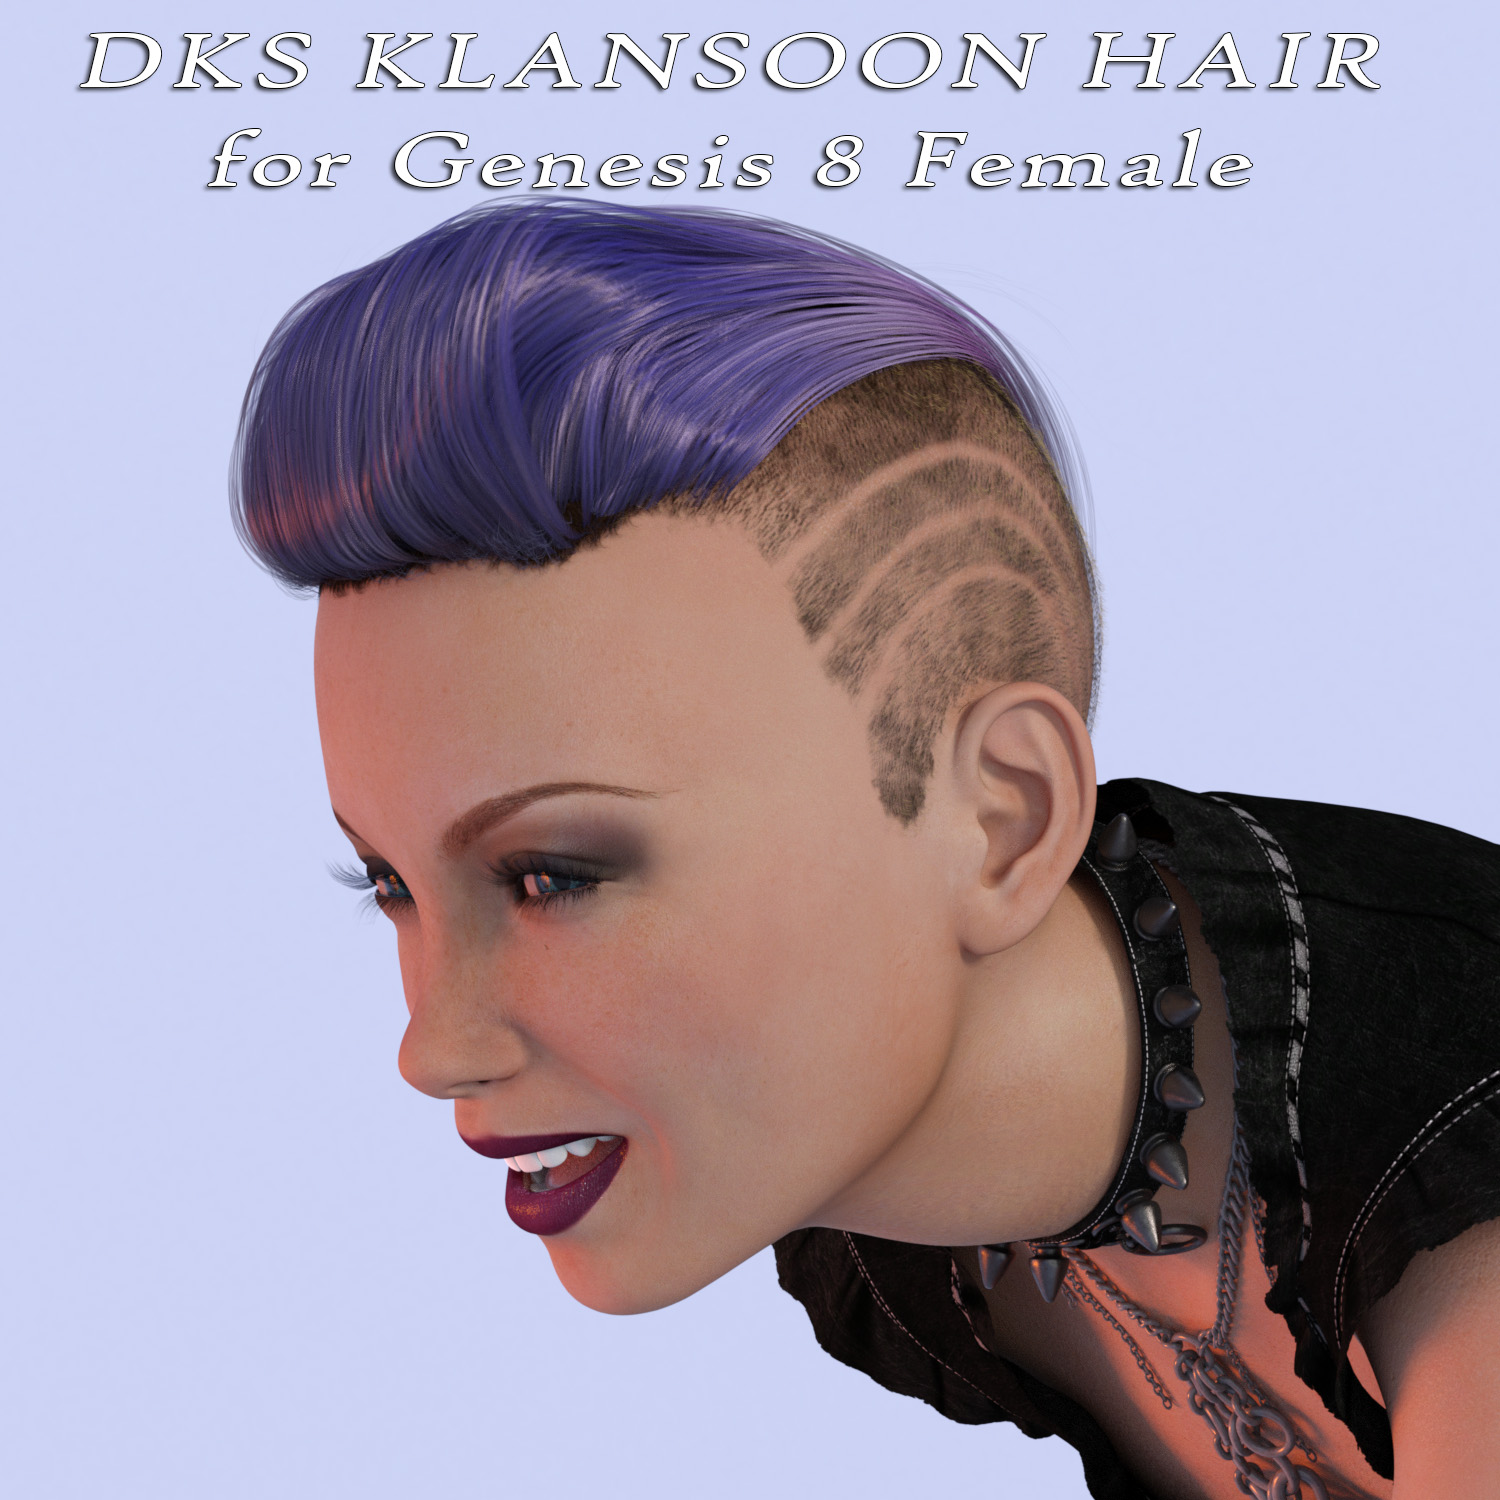 DKS Klansoon Hair for Genesis 8 Female